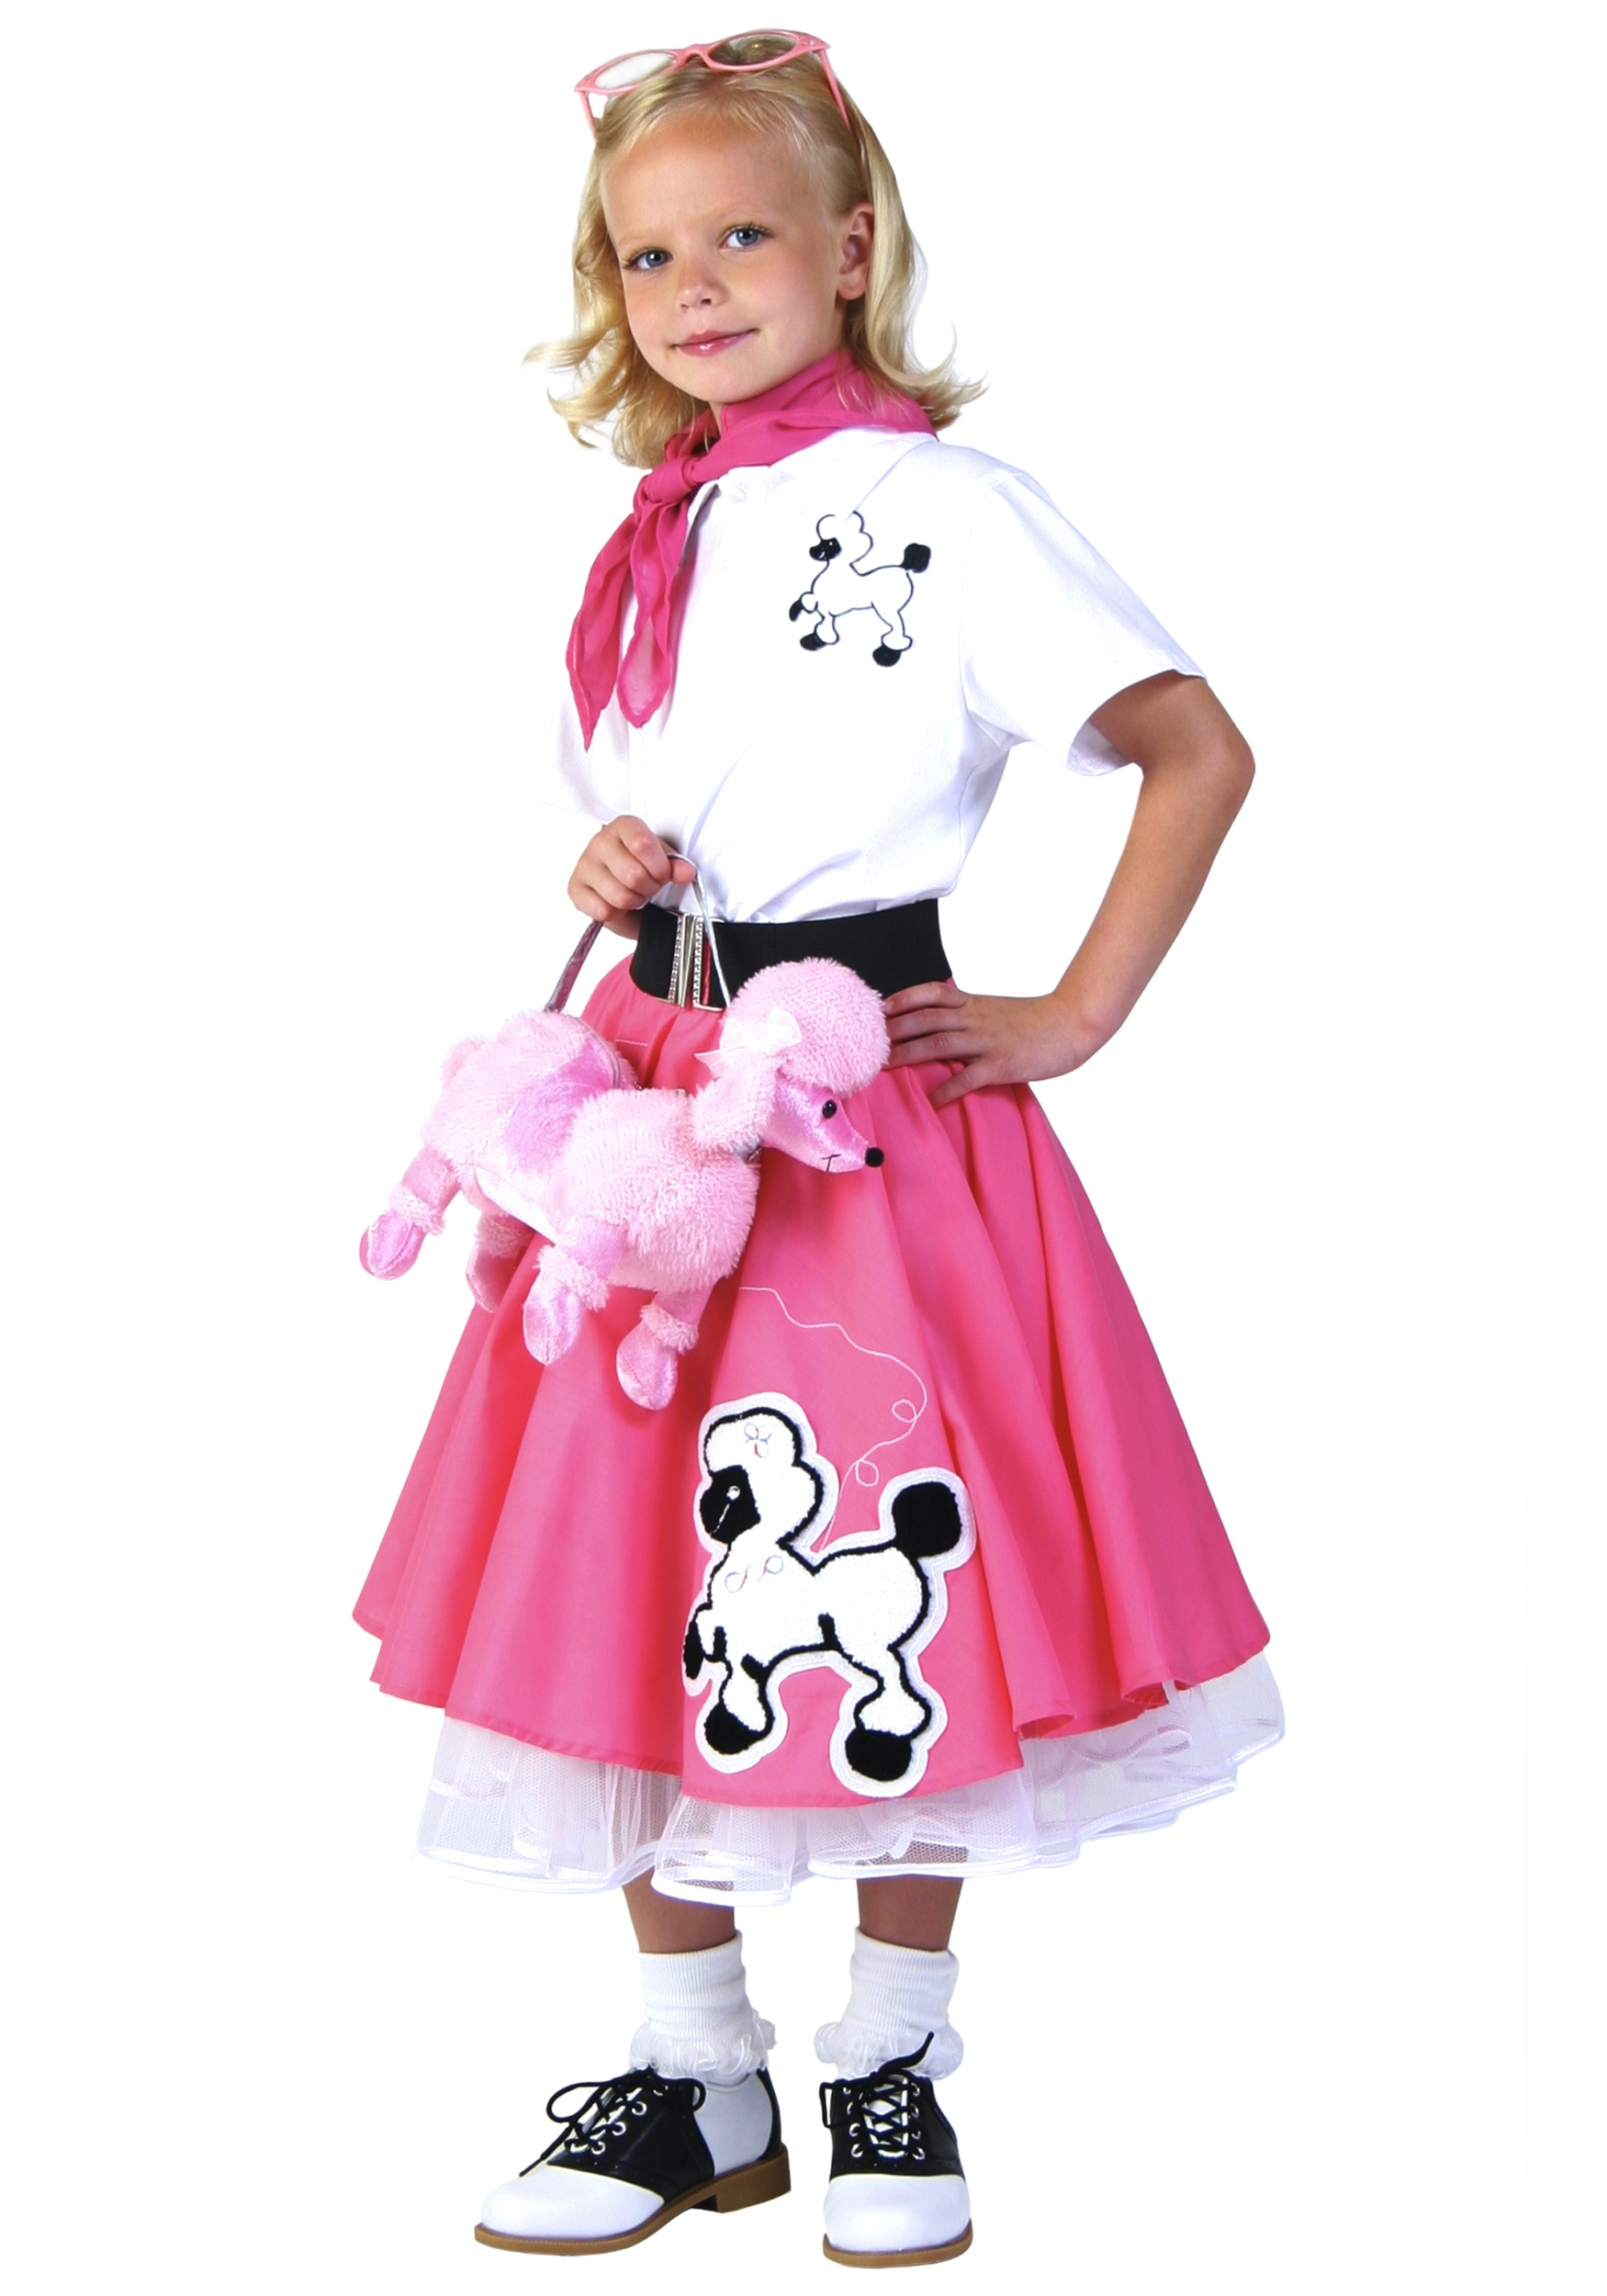 Kids Deluxe Pink Poodle Skirt Costume  sc 1 st  Halloween Costumes & Kids Deluxe Pink Poodle Skirt Costume - Halloween Costumes